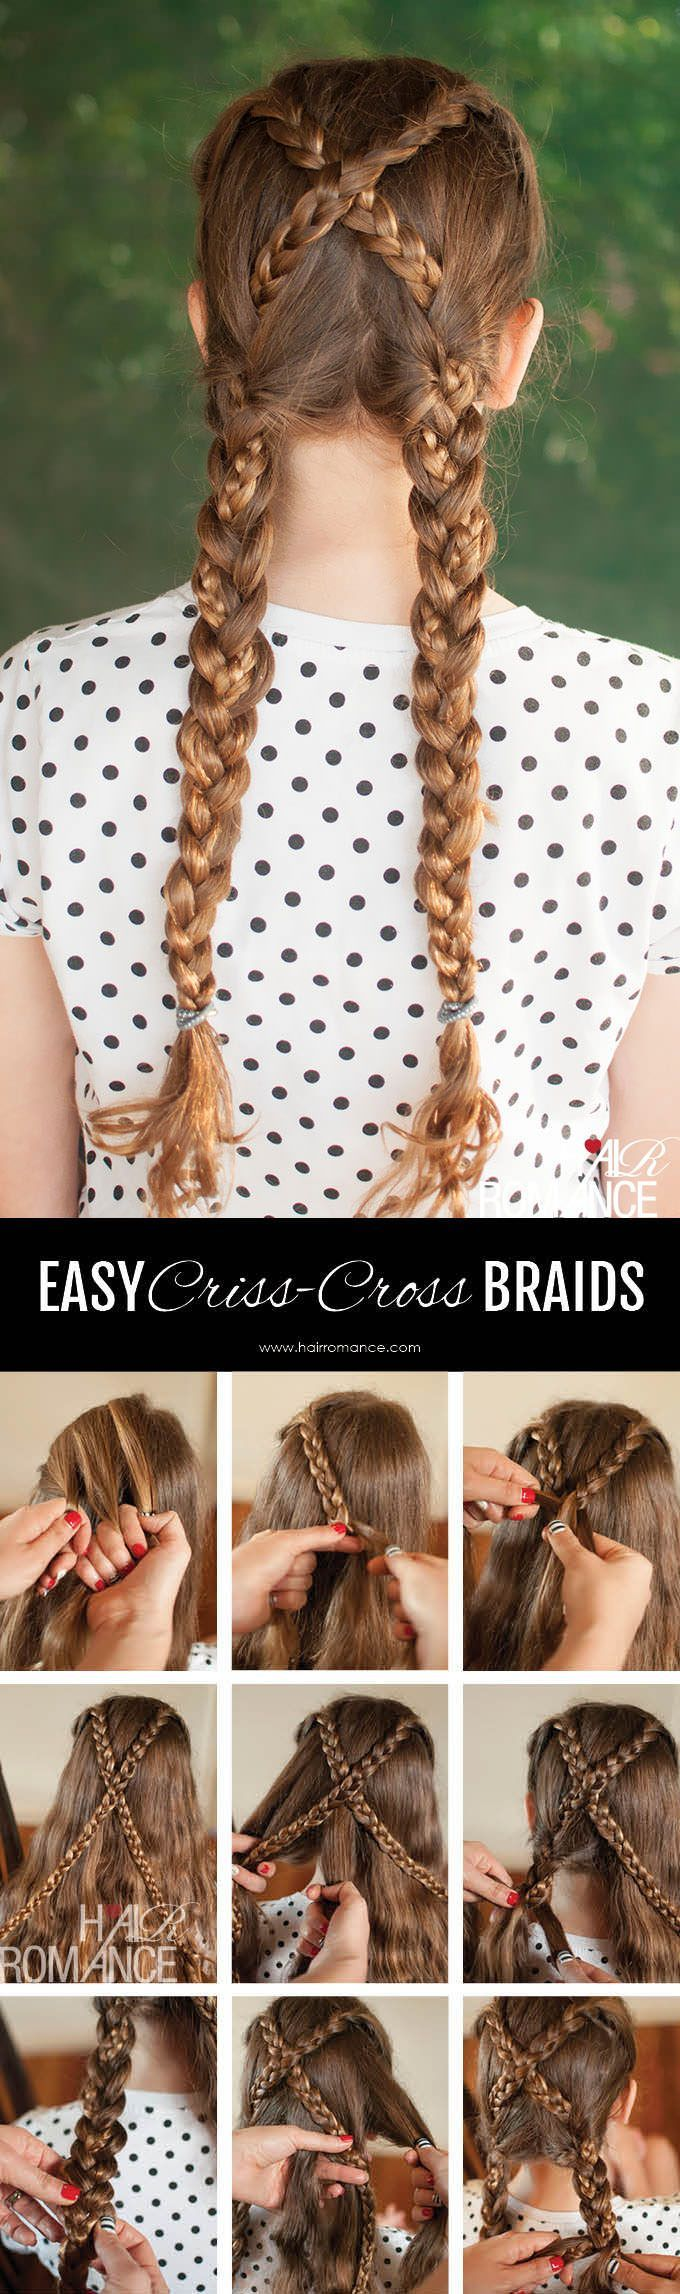 7 Different Style Braids Tutorials | Young Craze - click on the pic and scroll down the page to see several super cool braid ideas.